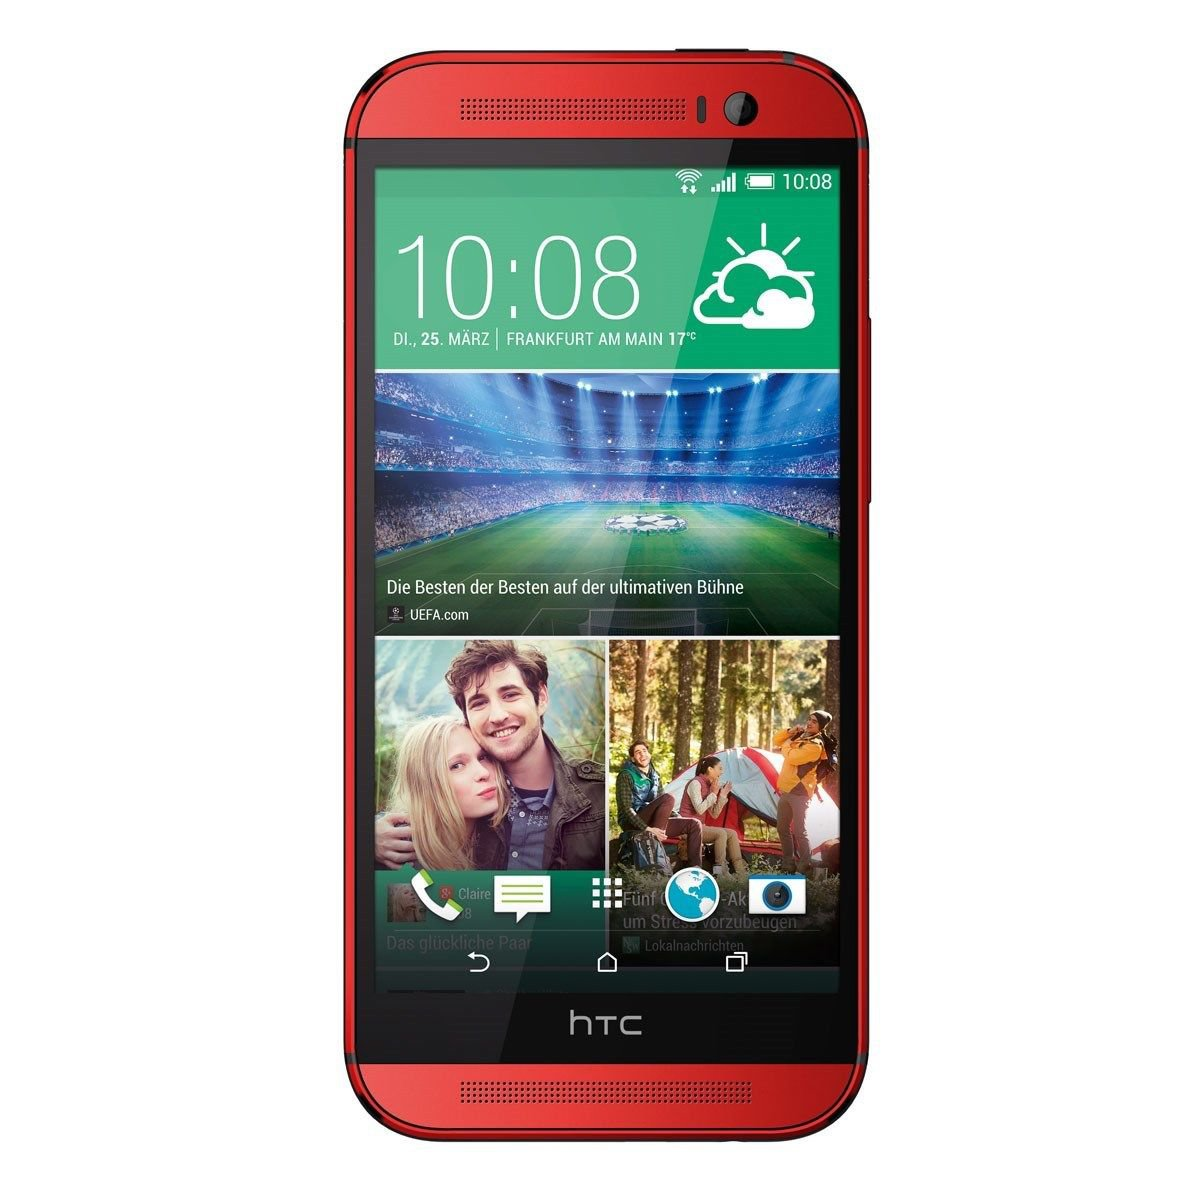 Htc – One (M8) 4G Lte Cell Phone – Red (Verizon Wireless)